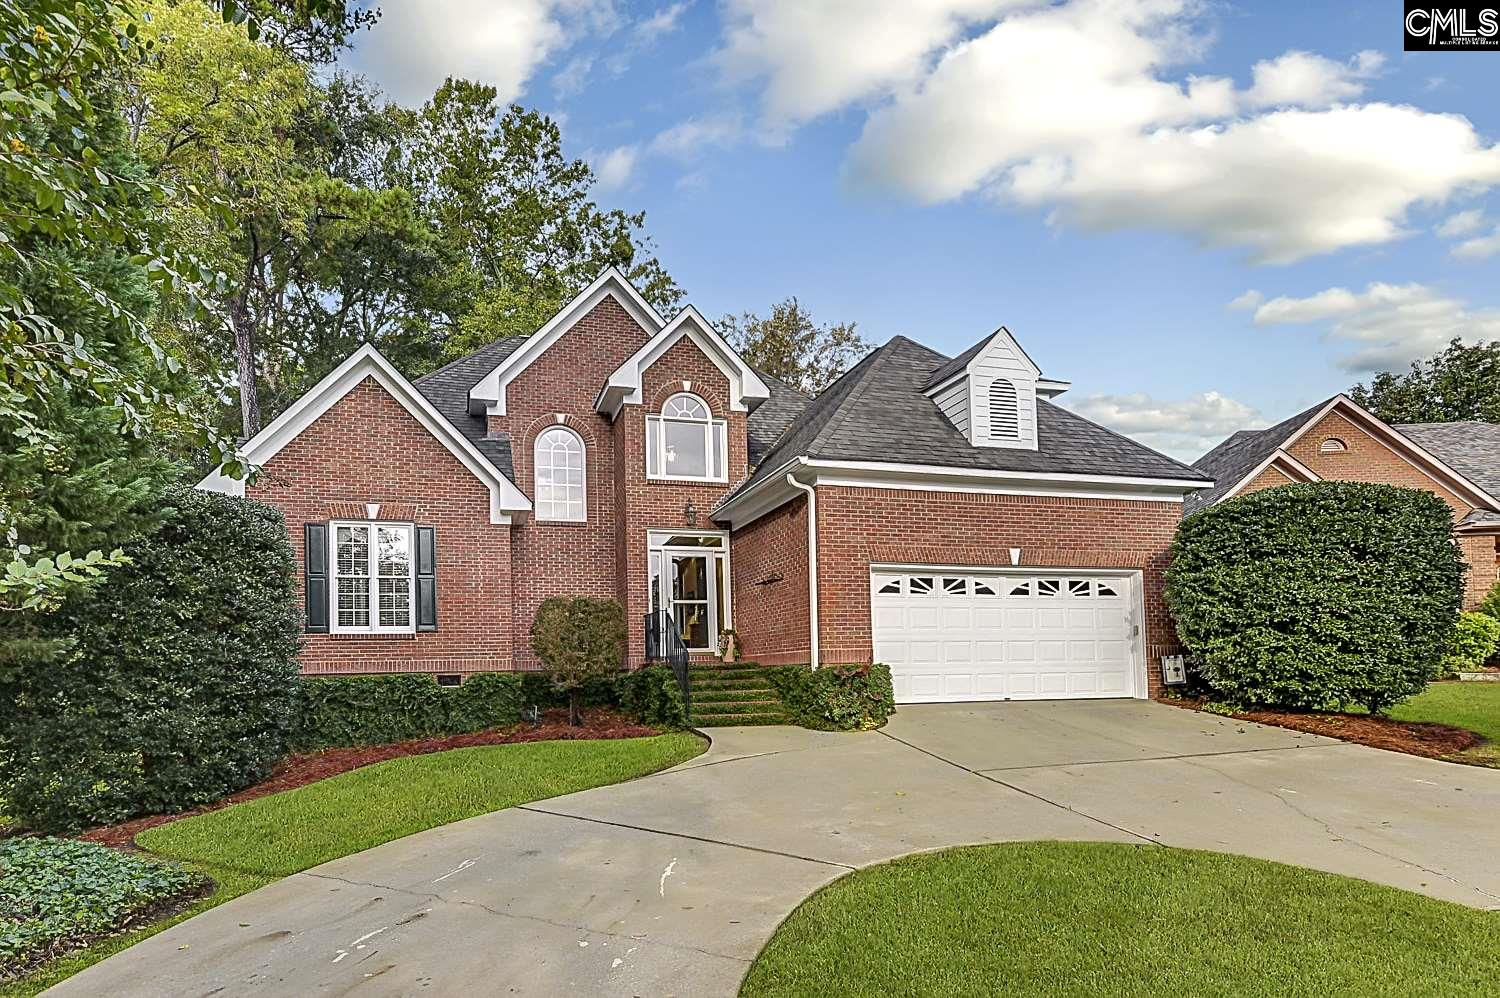 132 Heather Glen Lexington, SC 29072